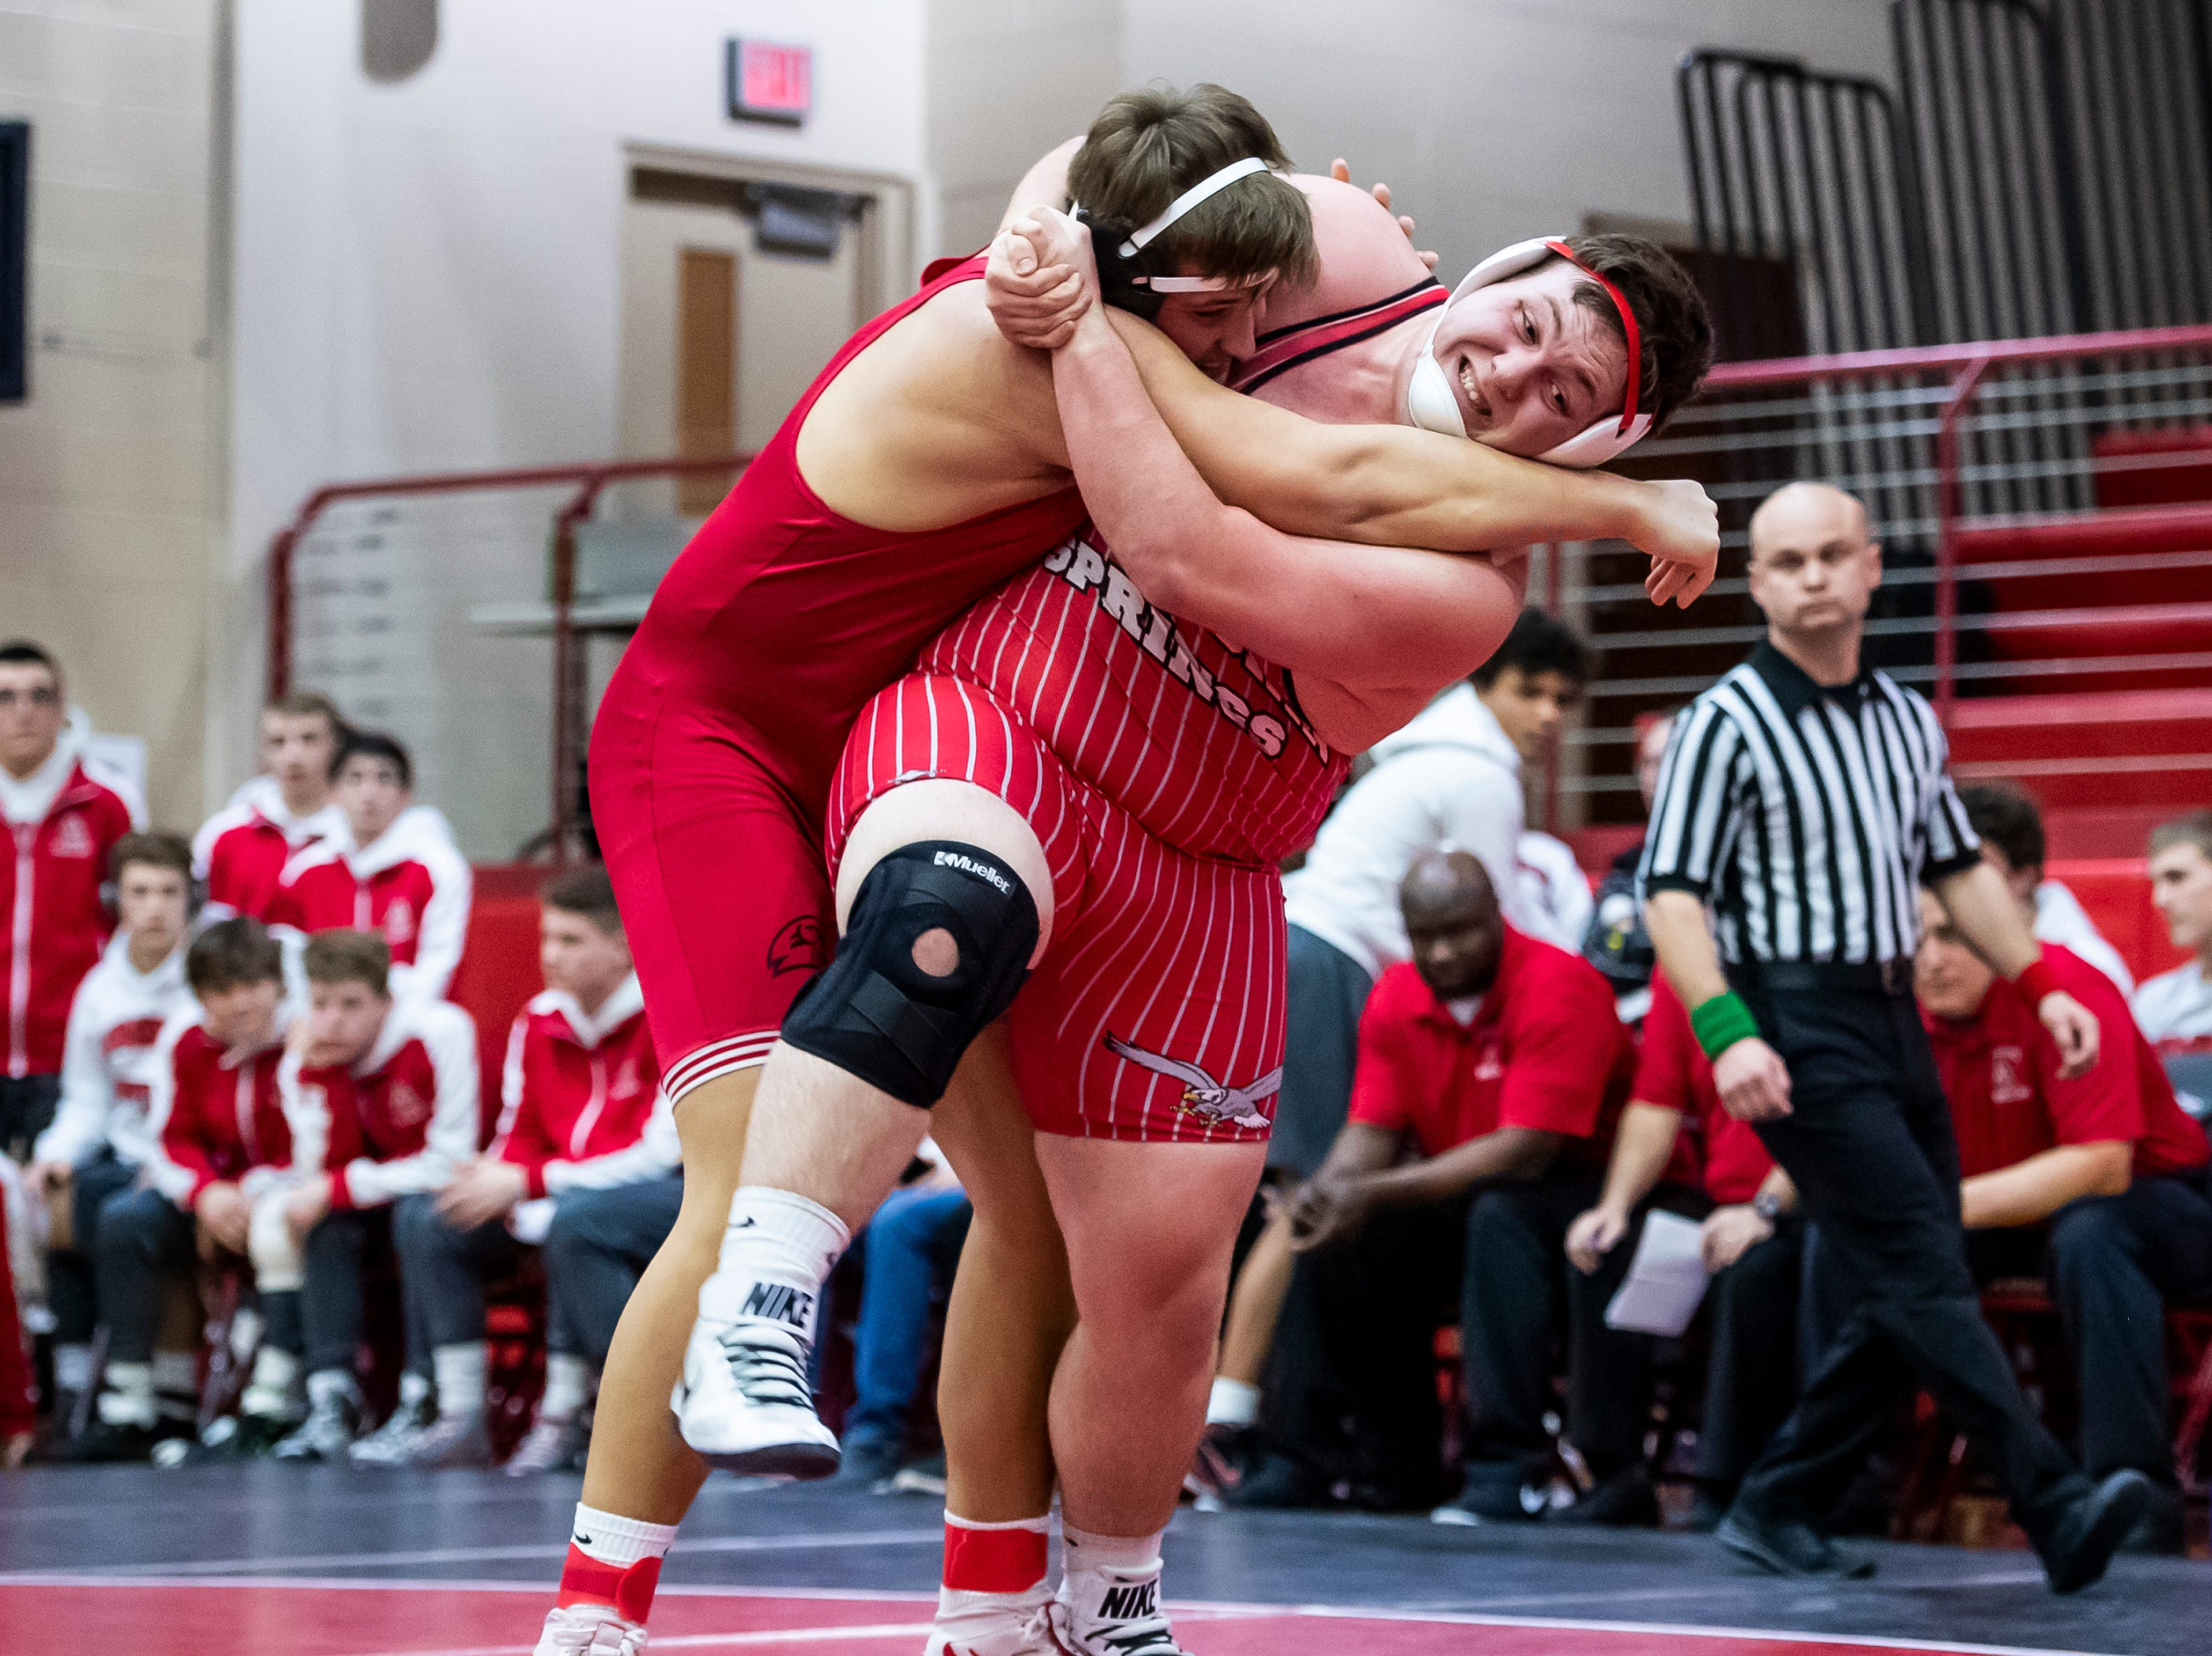 Bermudian Springs' Ryan Lauver, right, wrestles Hamburg's Caleb Foote in a 285-pound bout during a PIAA District III 2A semifinal match at Cumberland Valley High School January 31, 2019. The Eagles fell 43-24.